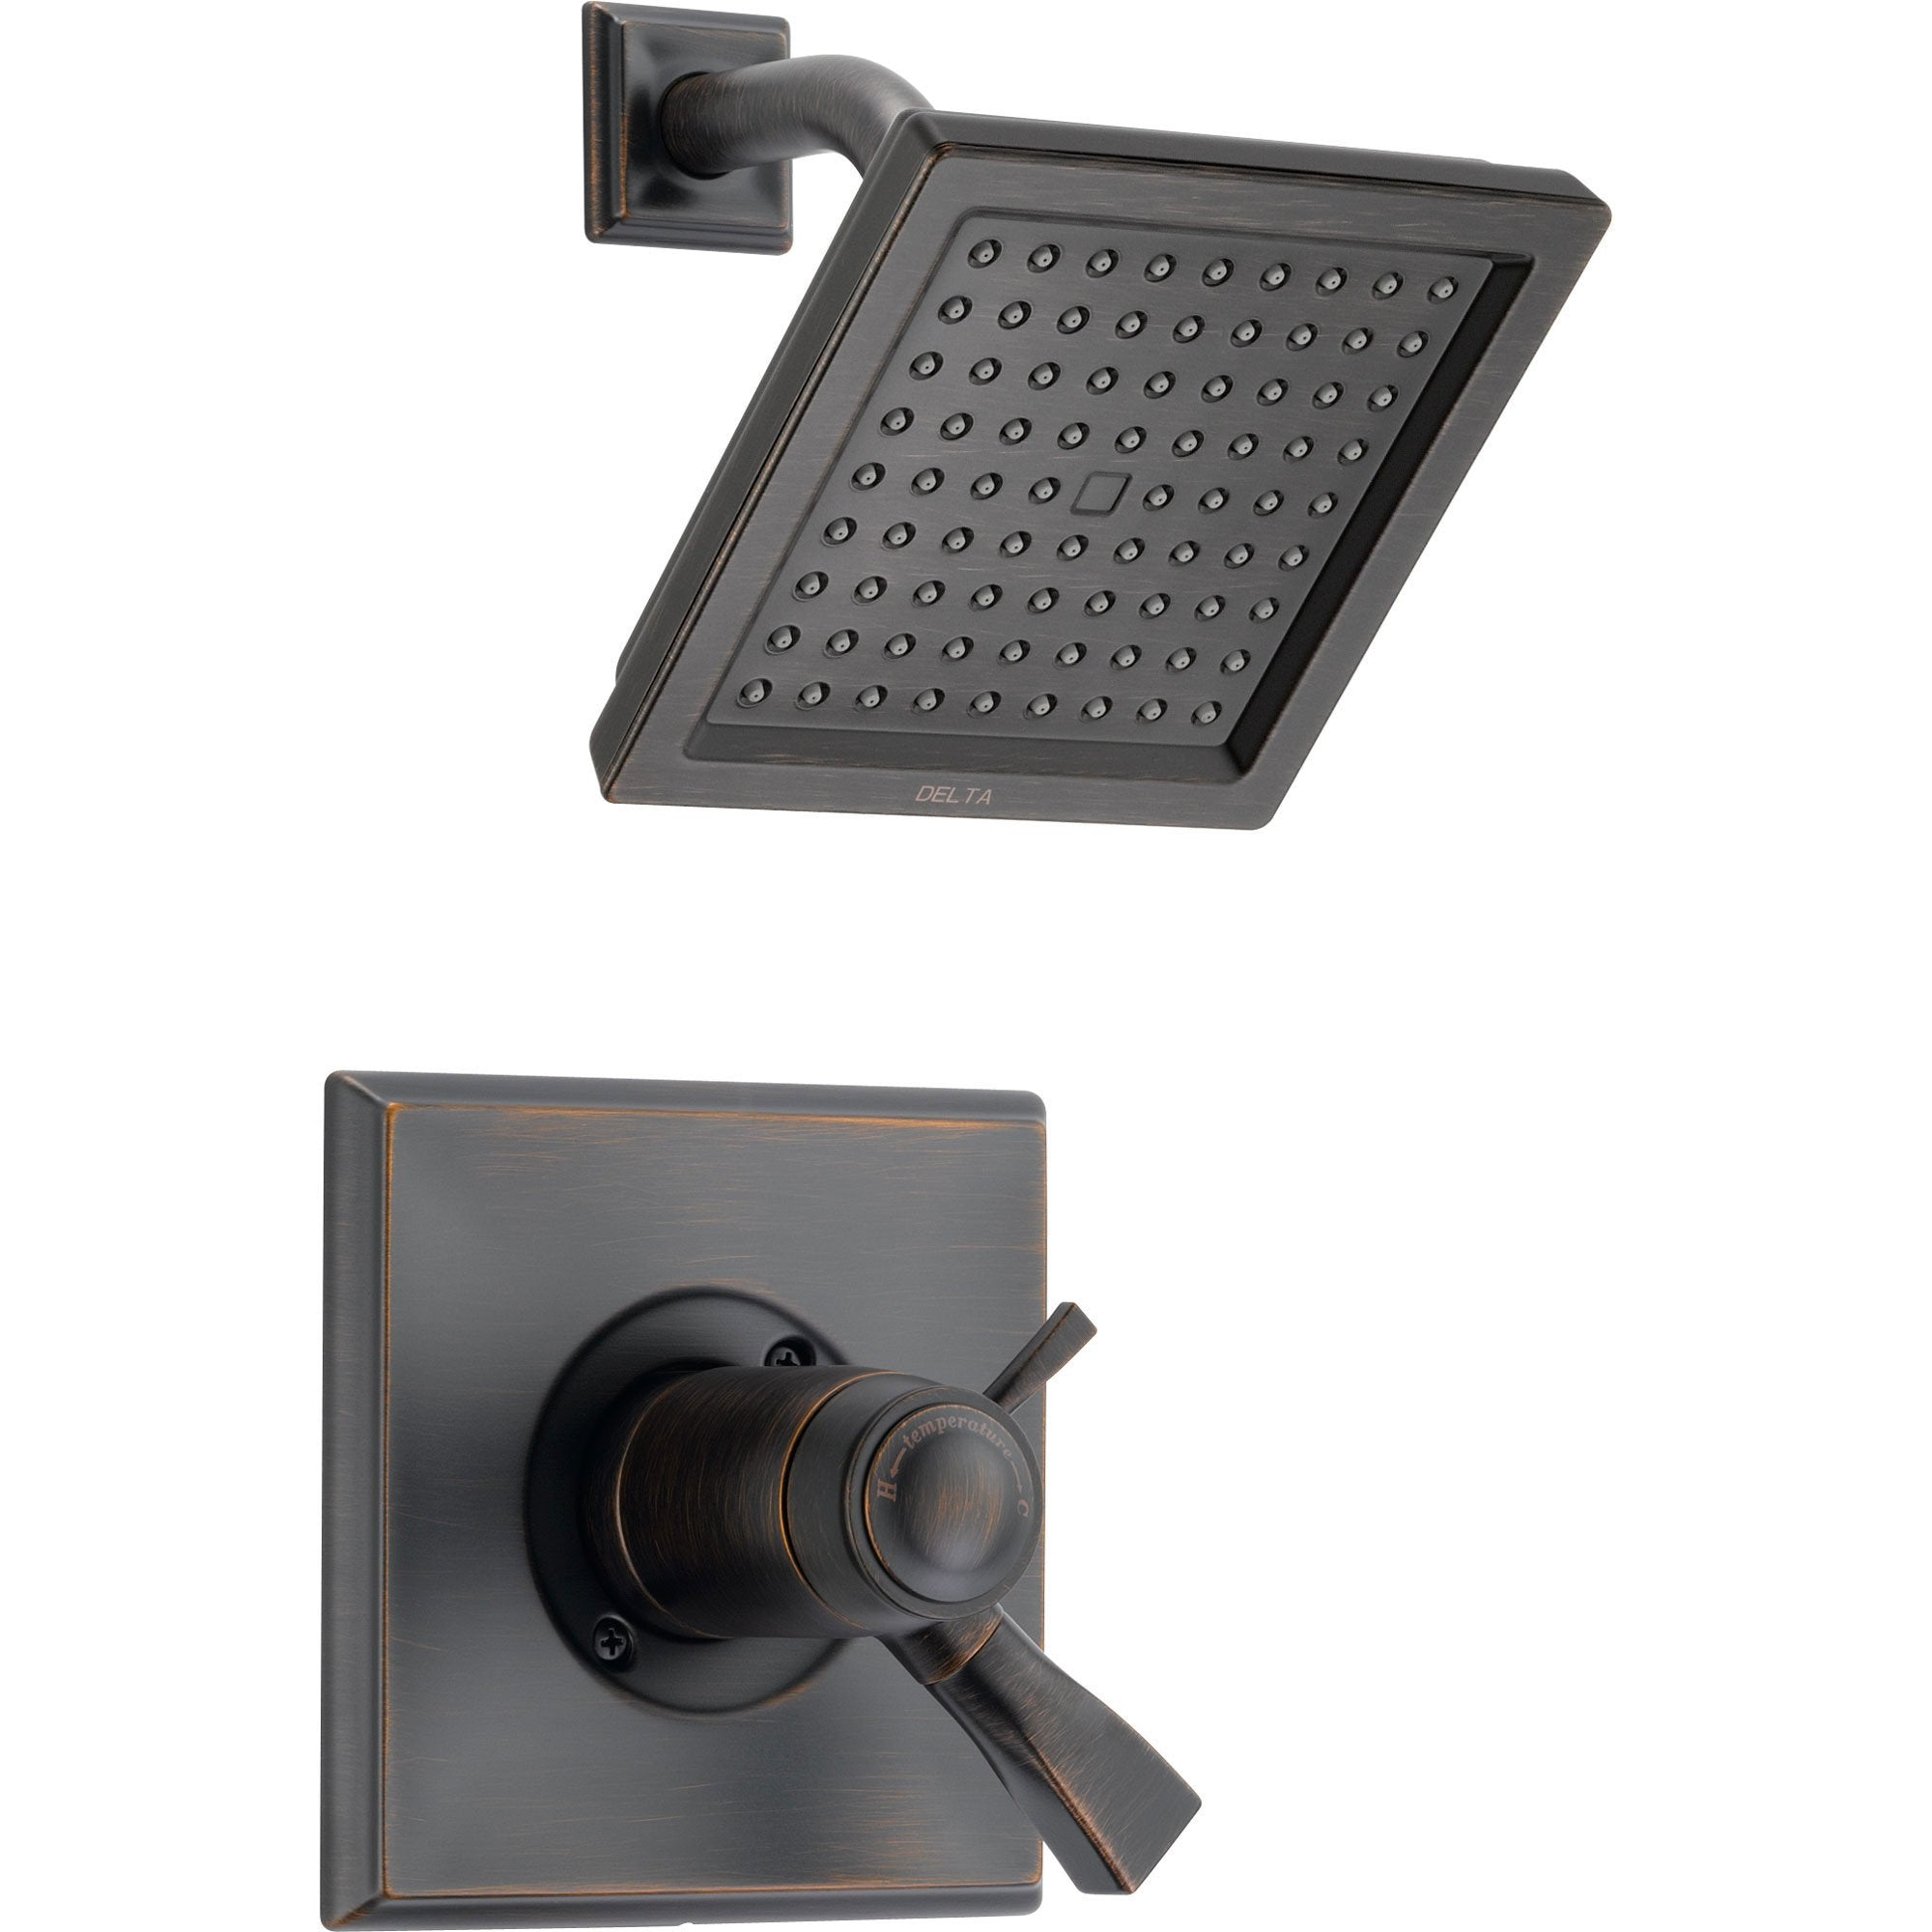 Delta Dryden Venetian Bronze Modern Thermostatic Shower Control with Valve D833V